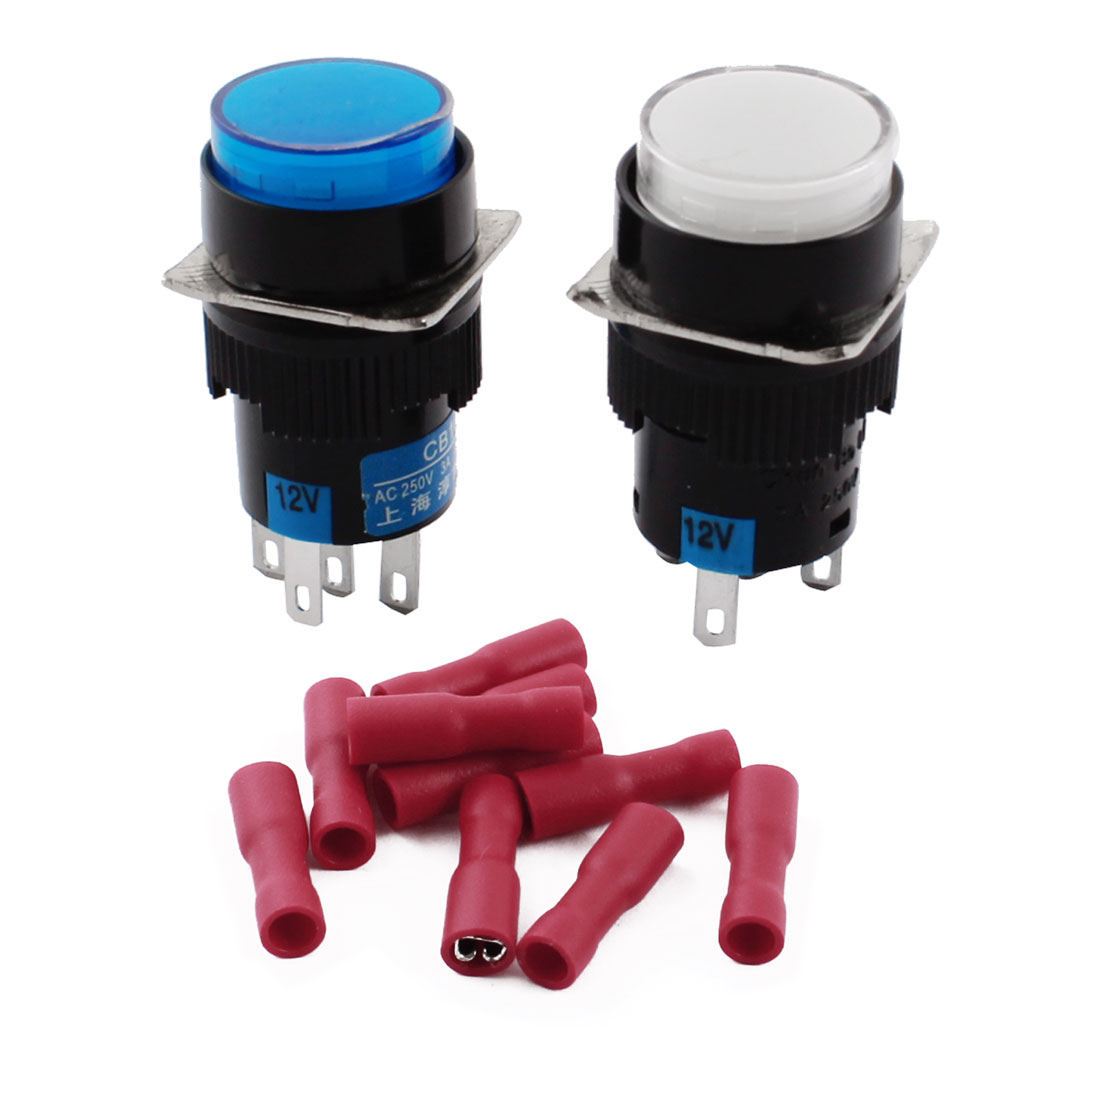 2Pcs DC 12V White Blue Pilot Light 5Pins 16mm Threaded Panel Mounted SPDT Latching Round Pushbutton Switch w Crimp Terminals